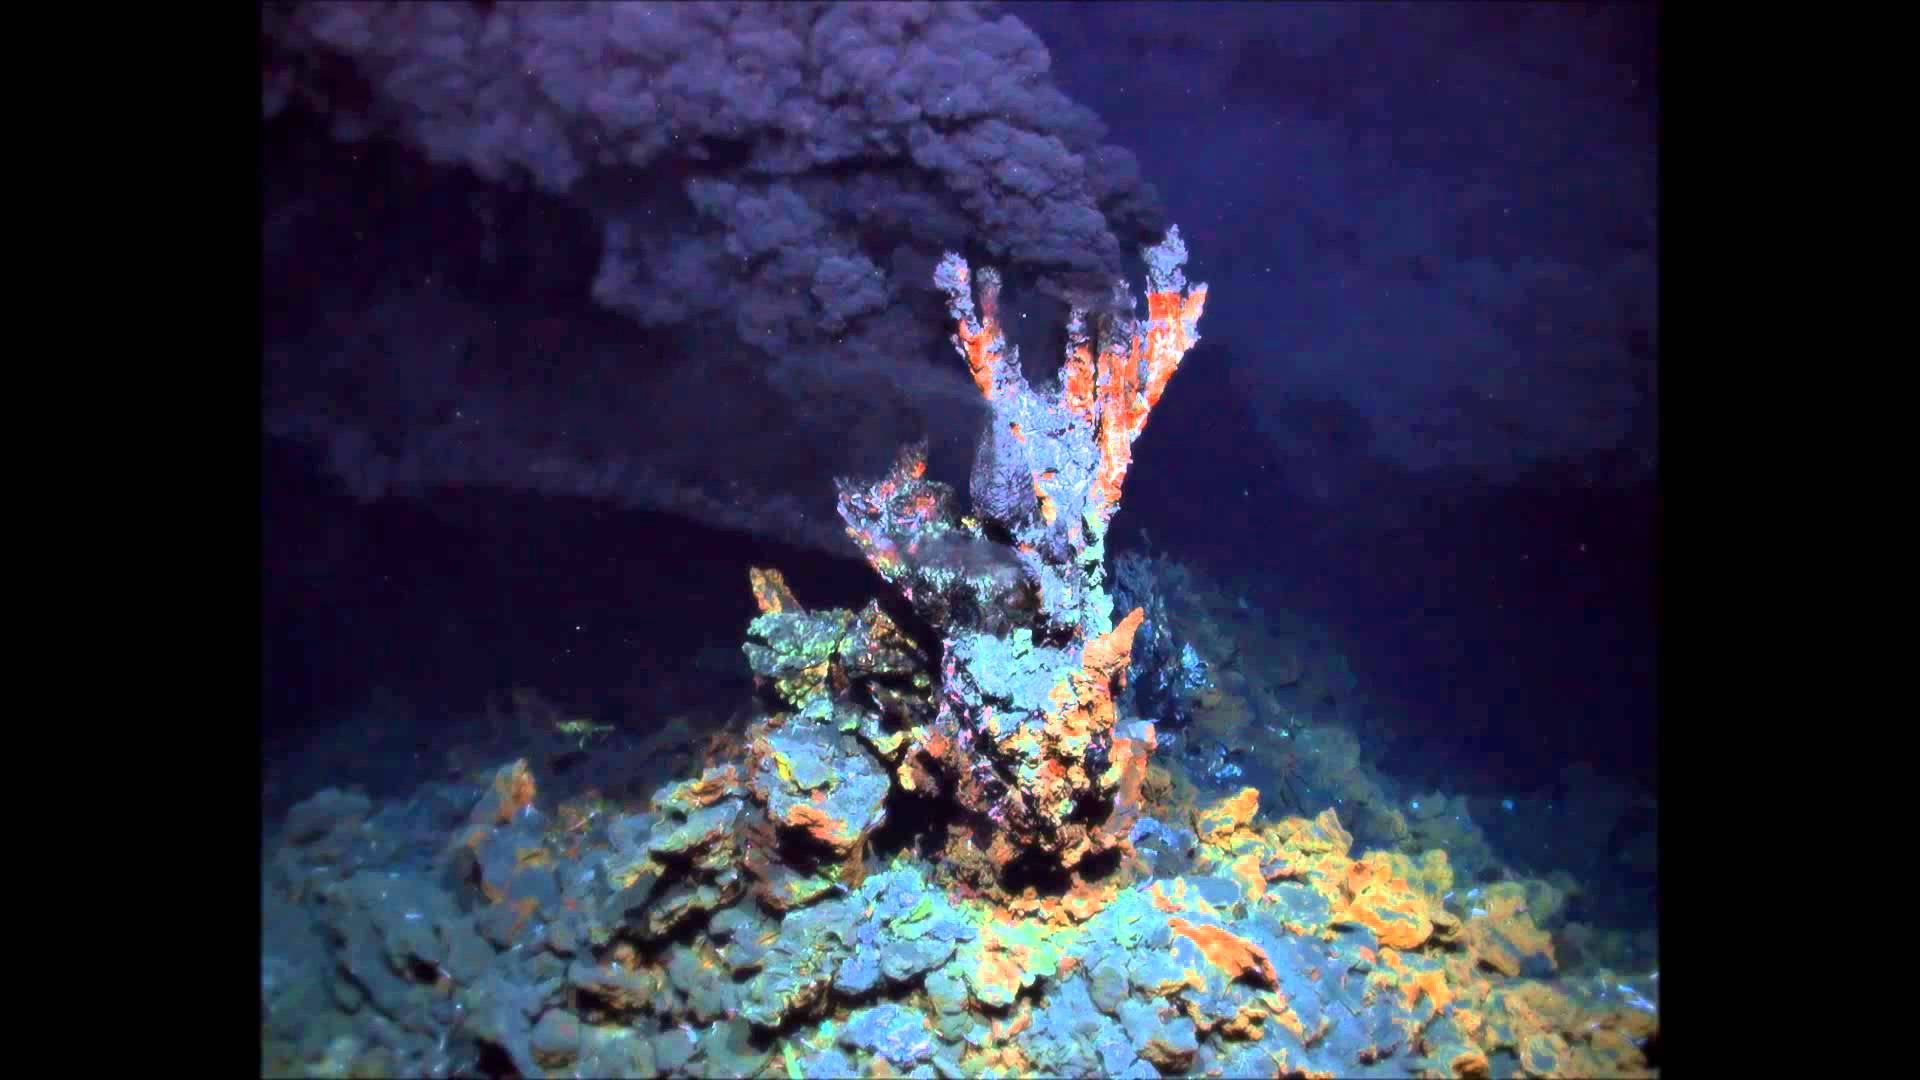 a discovery of hydrothermal vent In february, 1977, bob ballard and his team of geologists, geochemists and geophysicists discovered hydrothermal vents on the pacific ocean floor.